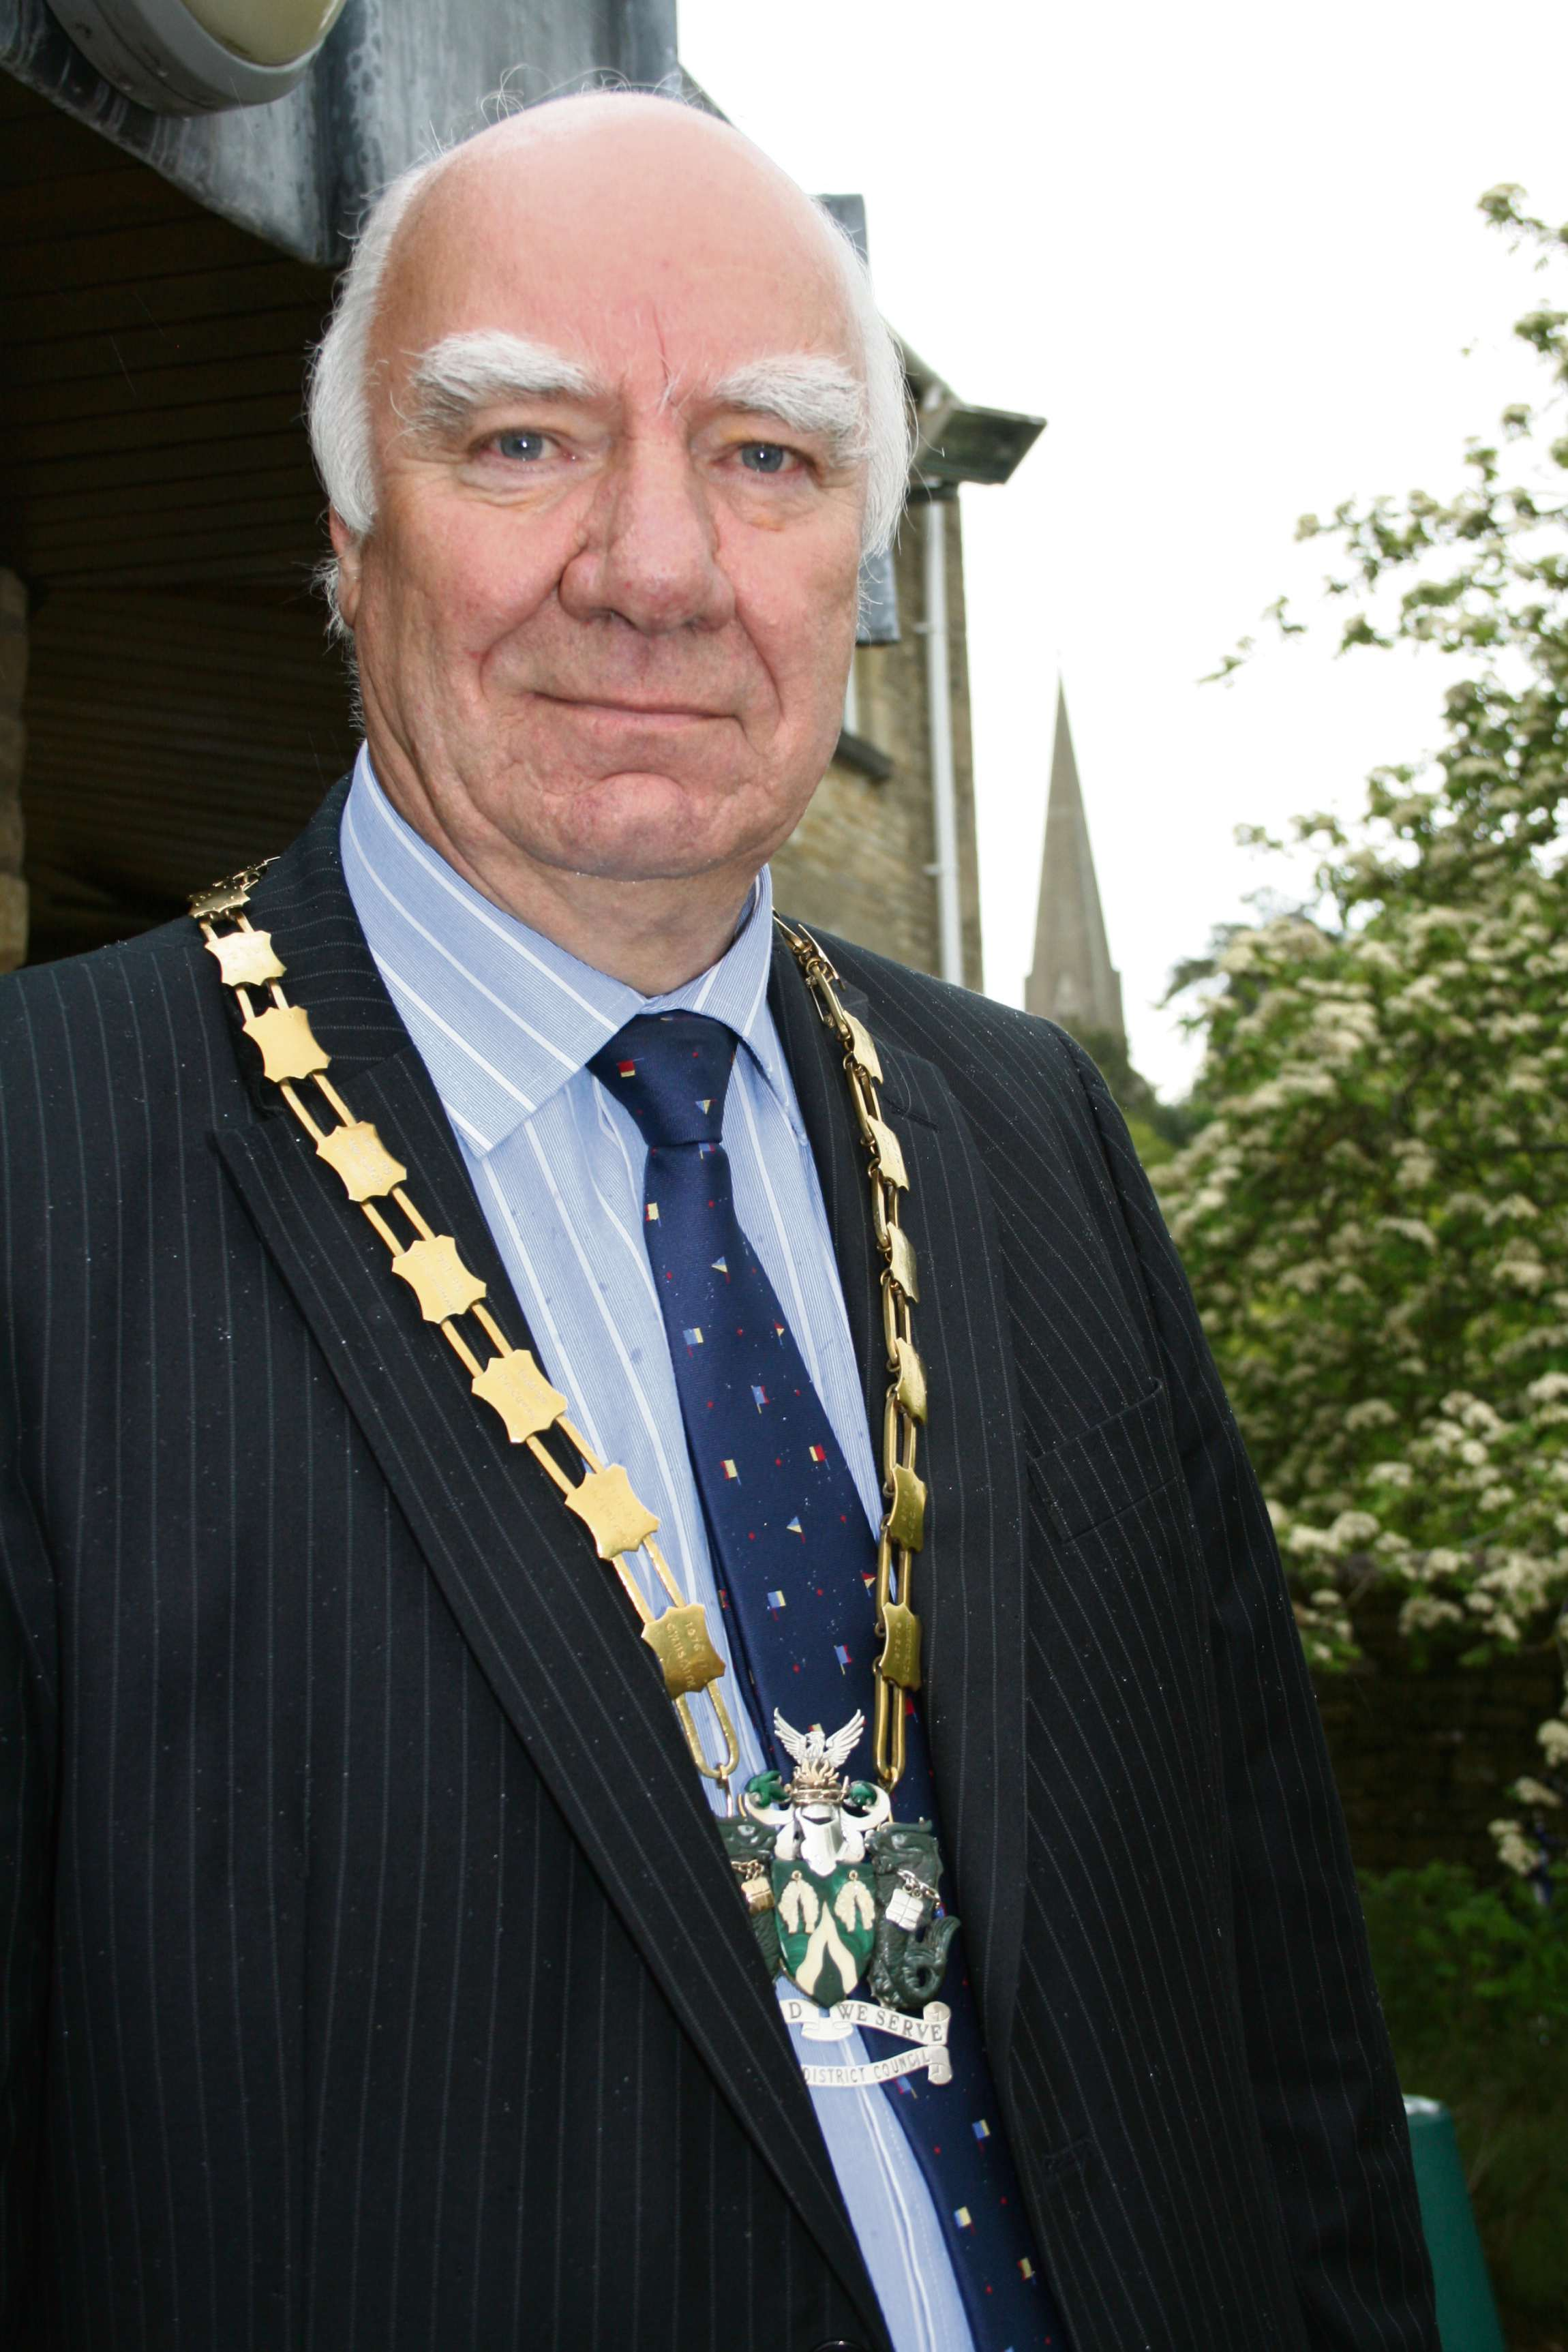 Cllr Clive Bennett, new Chairman of Cotswold District Council